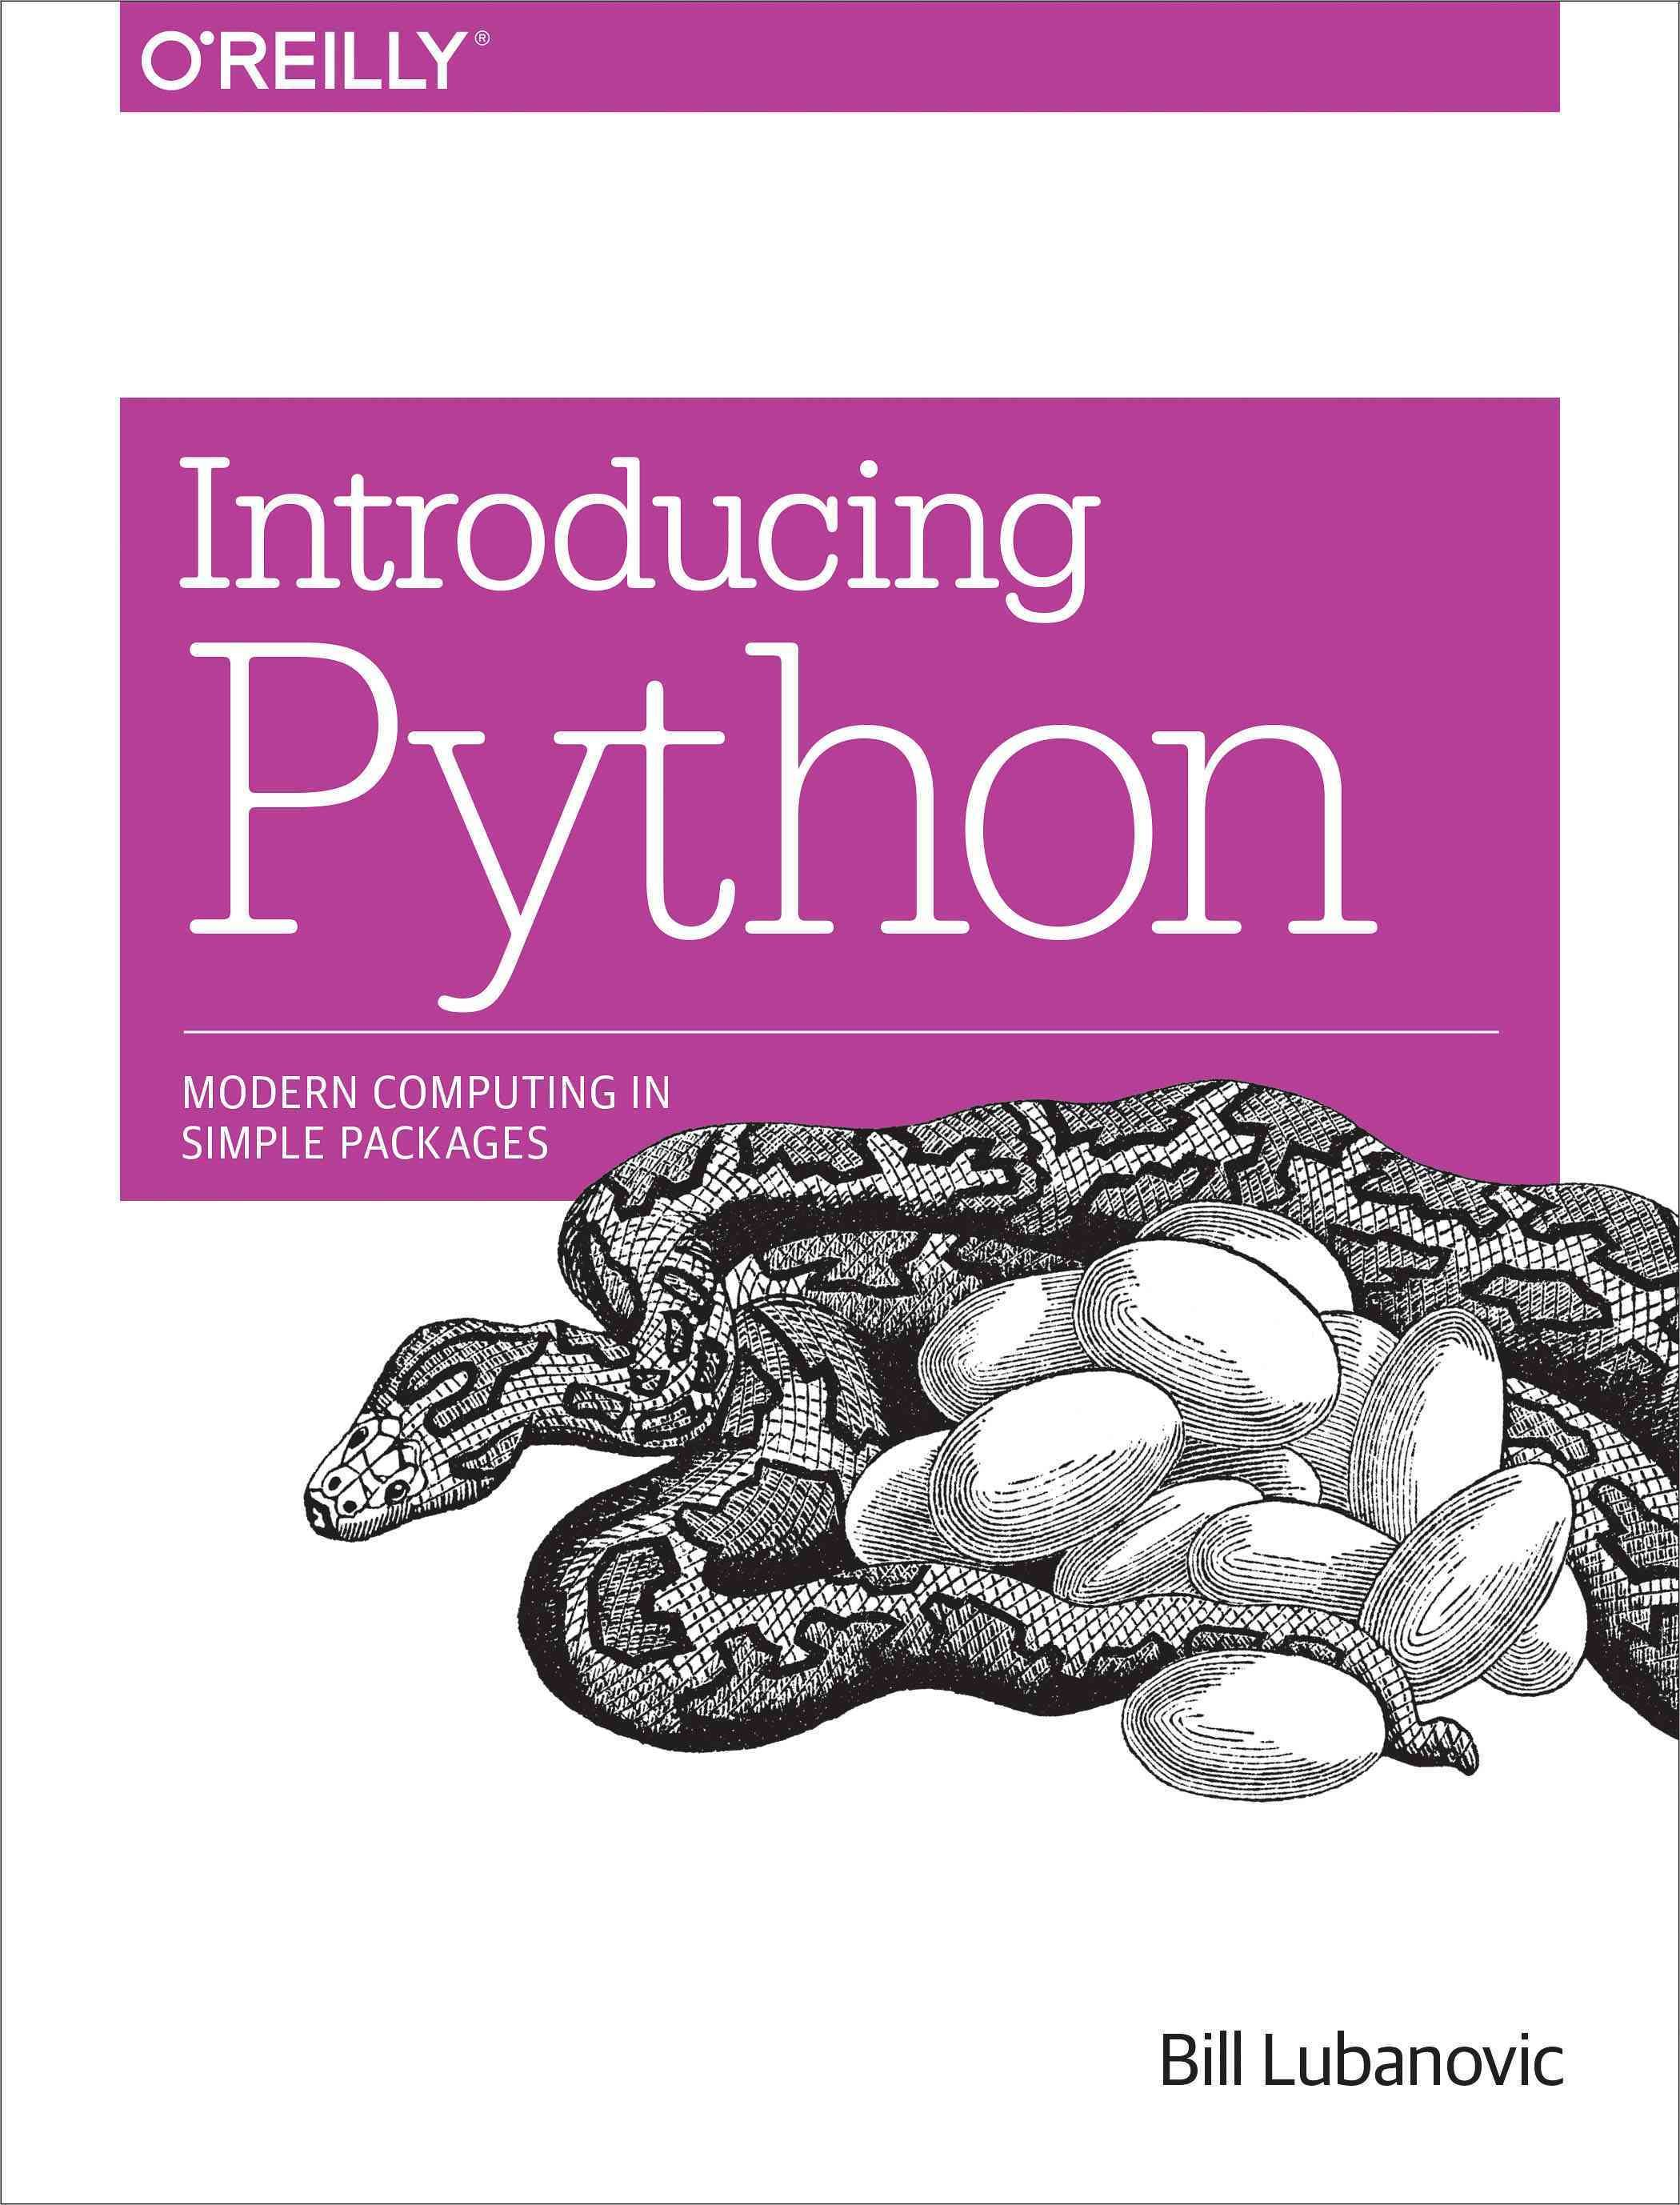 Easy To Understand And Fun To Read Introducing Python Is Ideal For